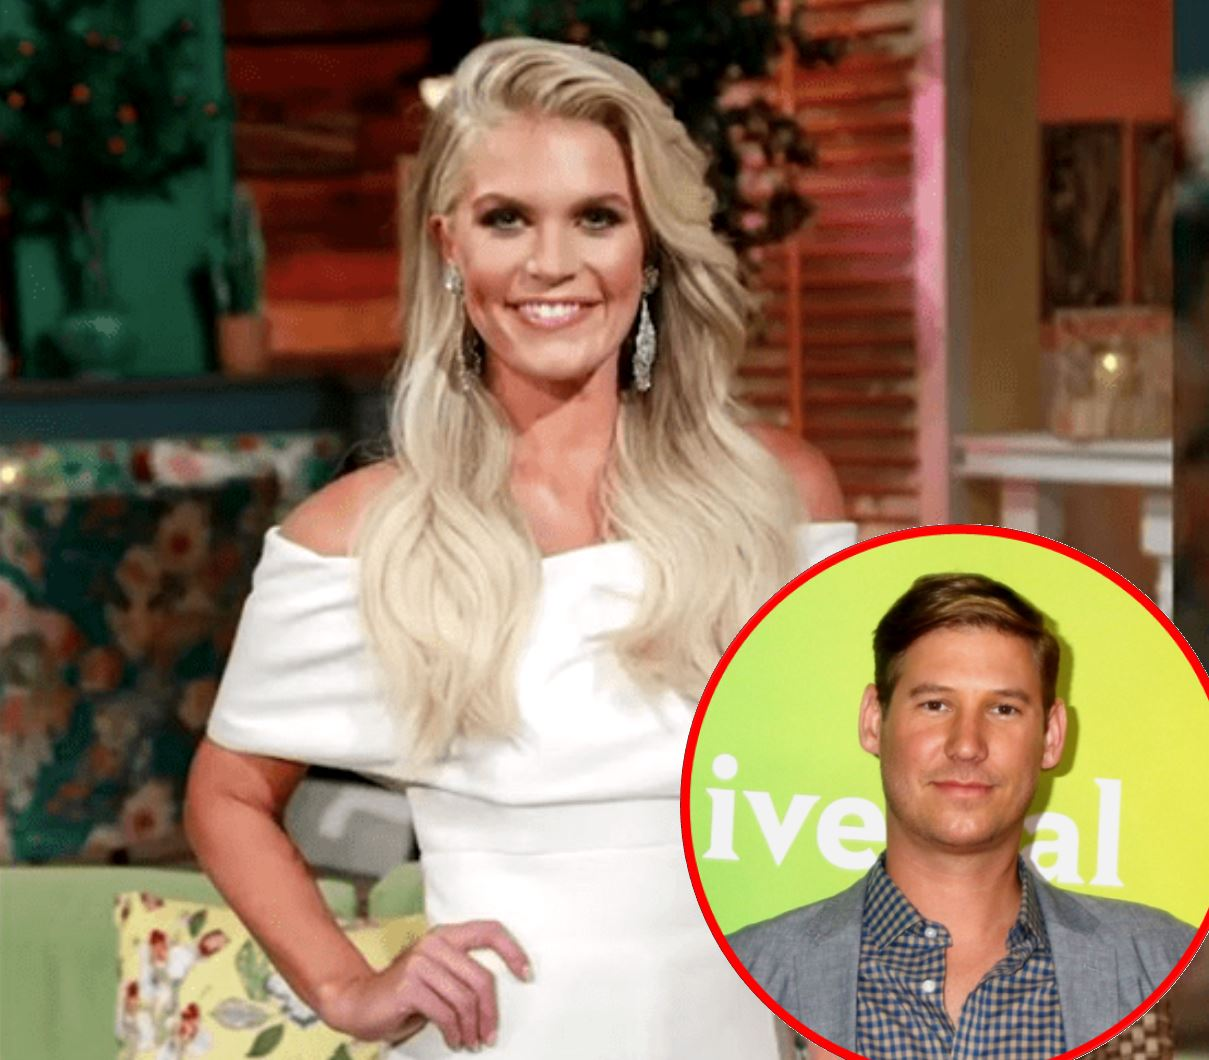 PHOTOS: Southern Charm's Madison LeCroy Linked to New Man Amid On-Off Relationship With Austen Kroll, She Addresses Alleged Romance and Shows Off New Boob Job